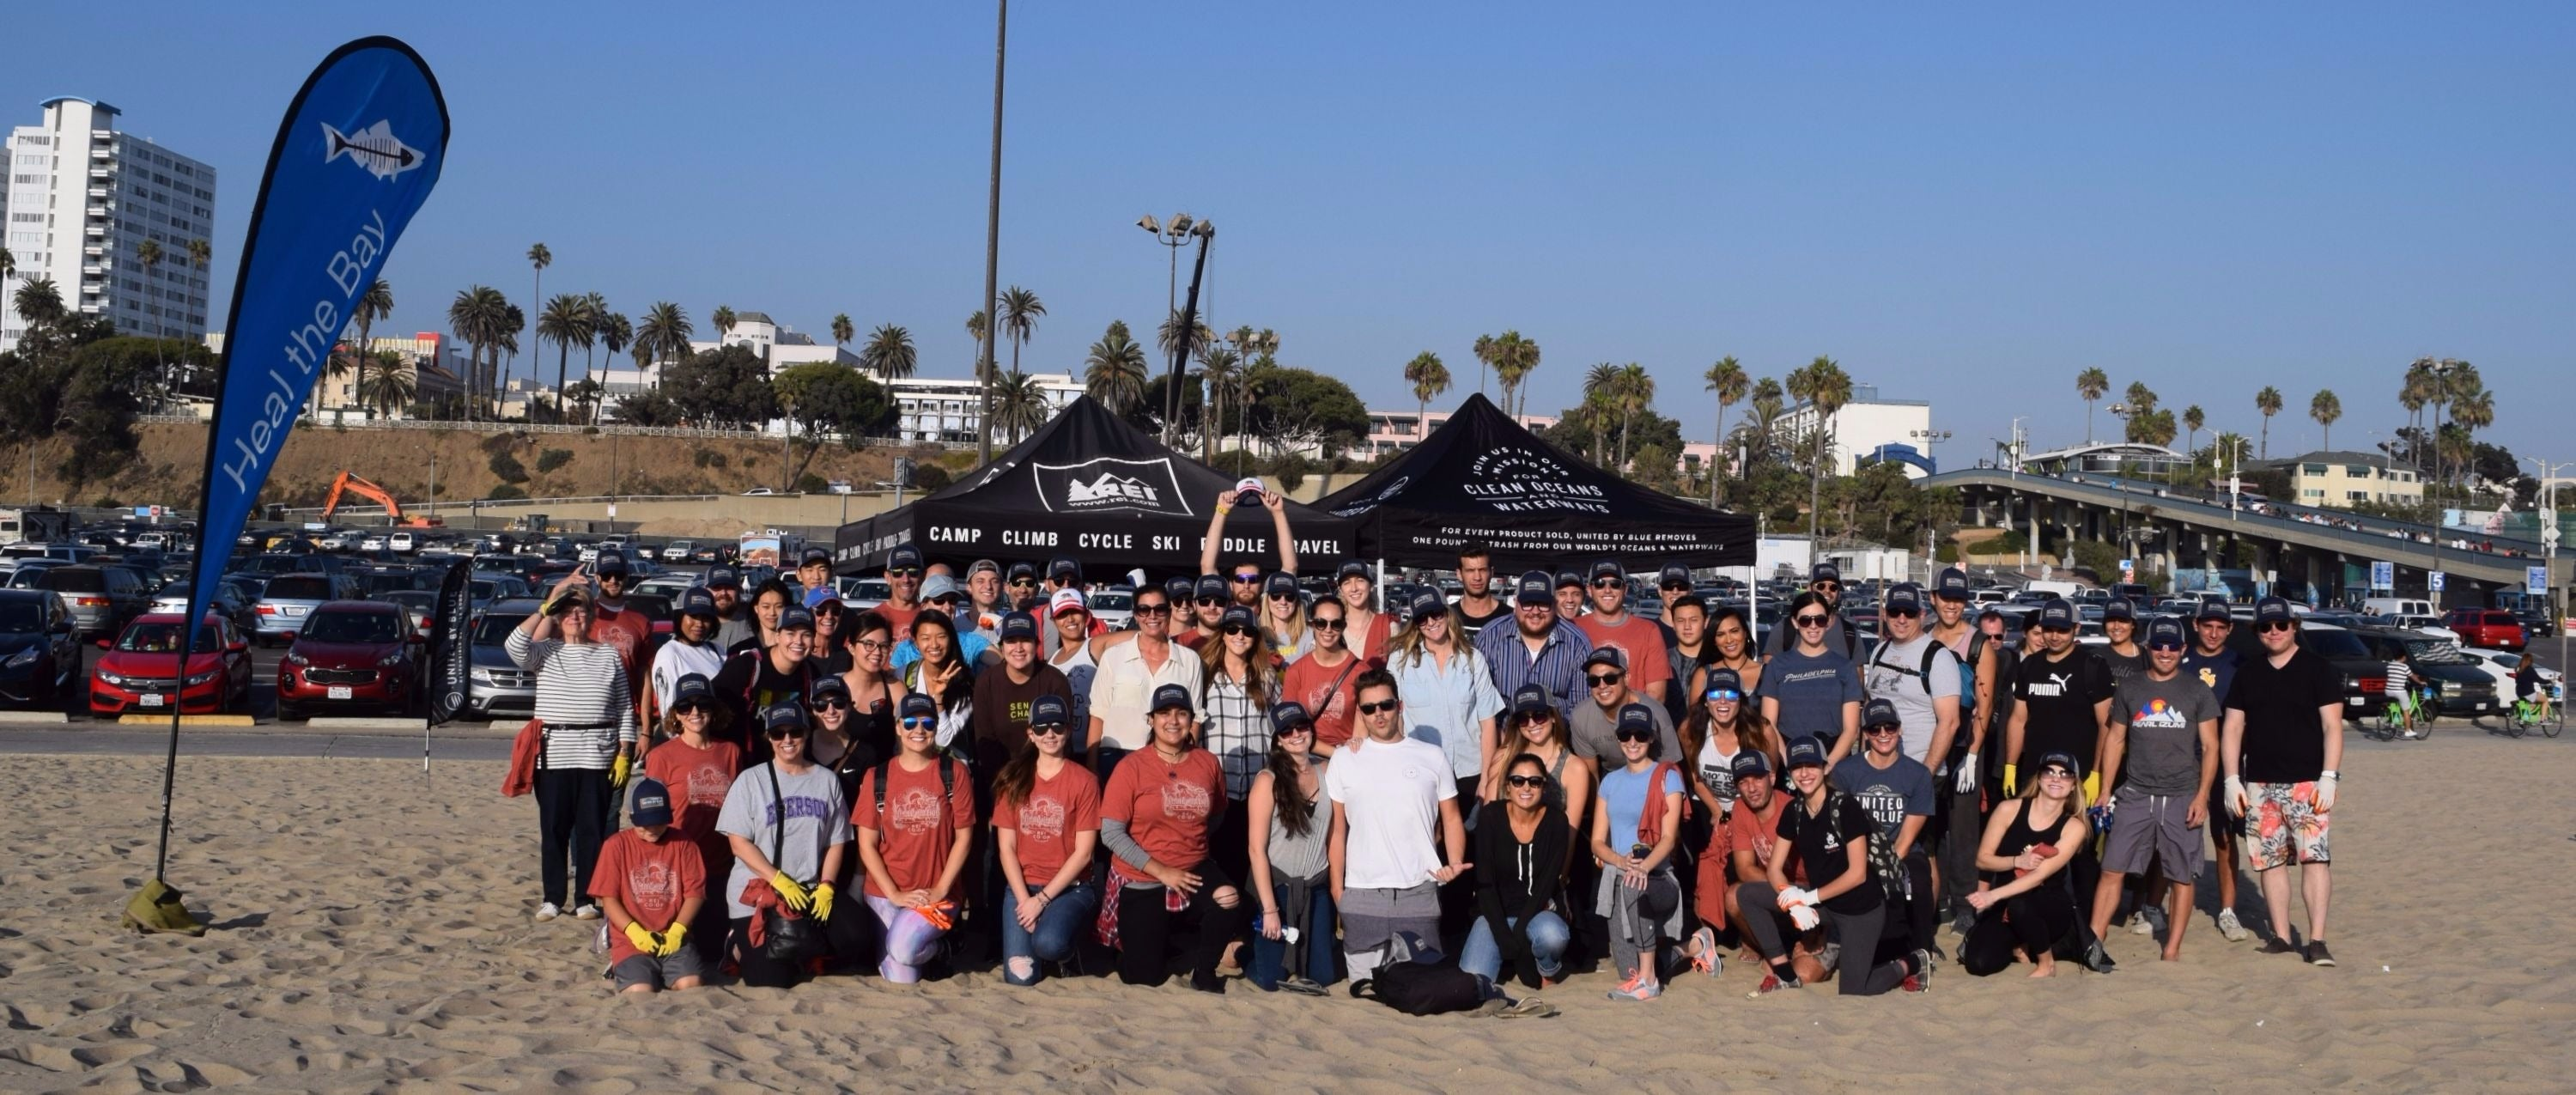 Santa monica beach cleanup